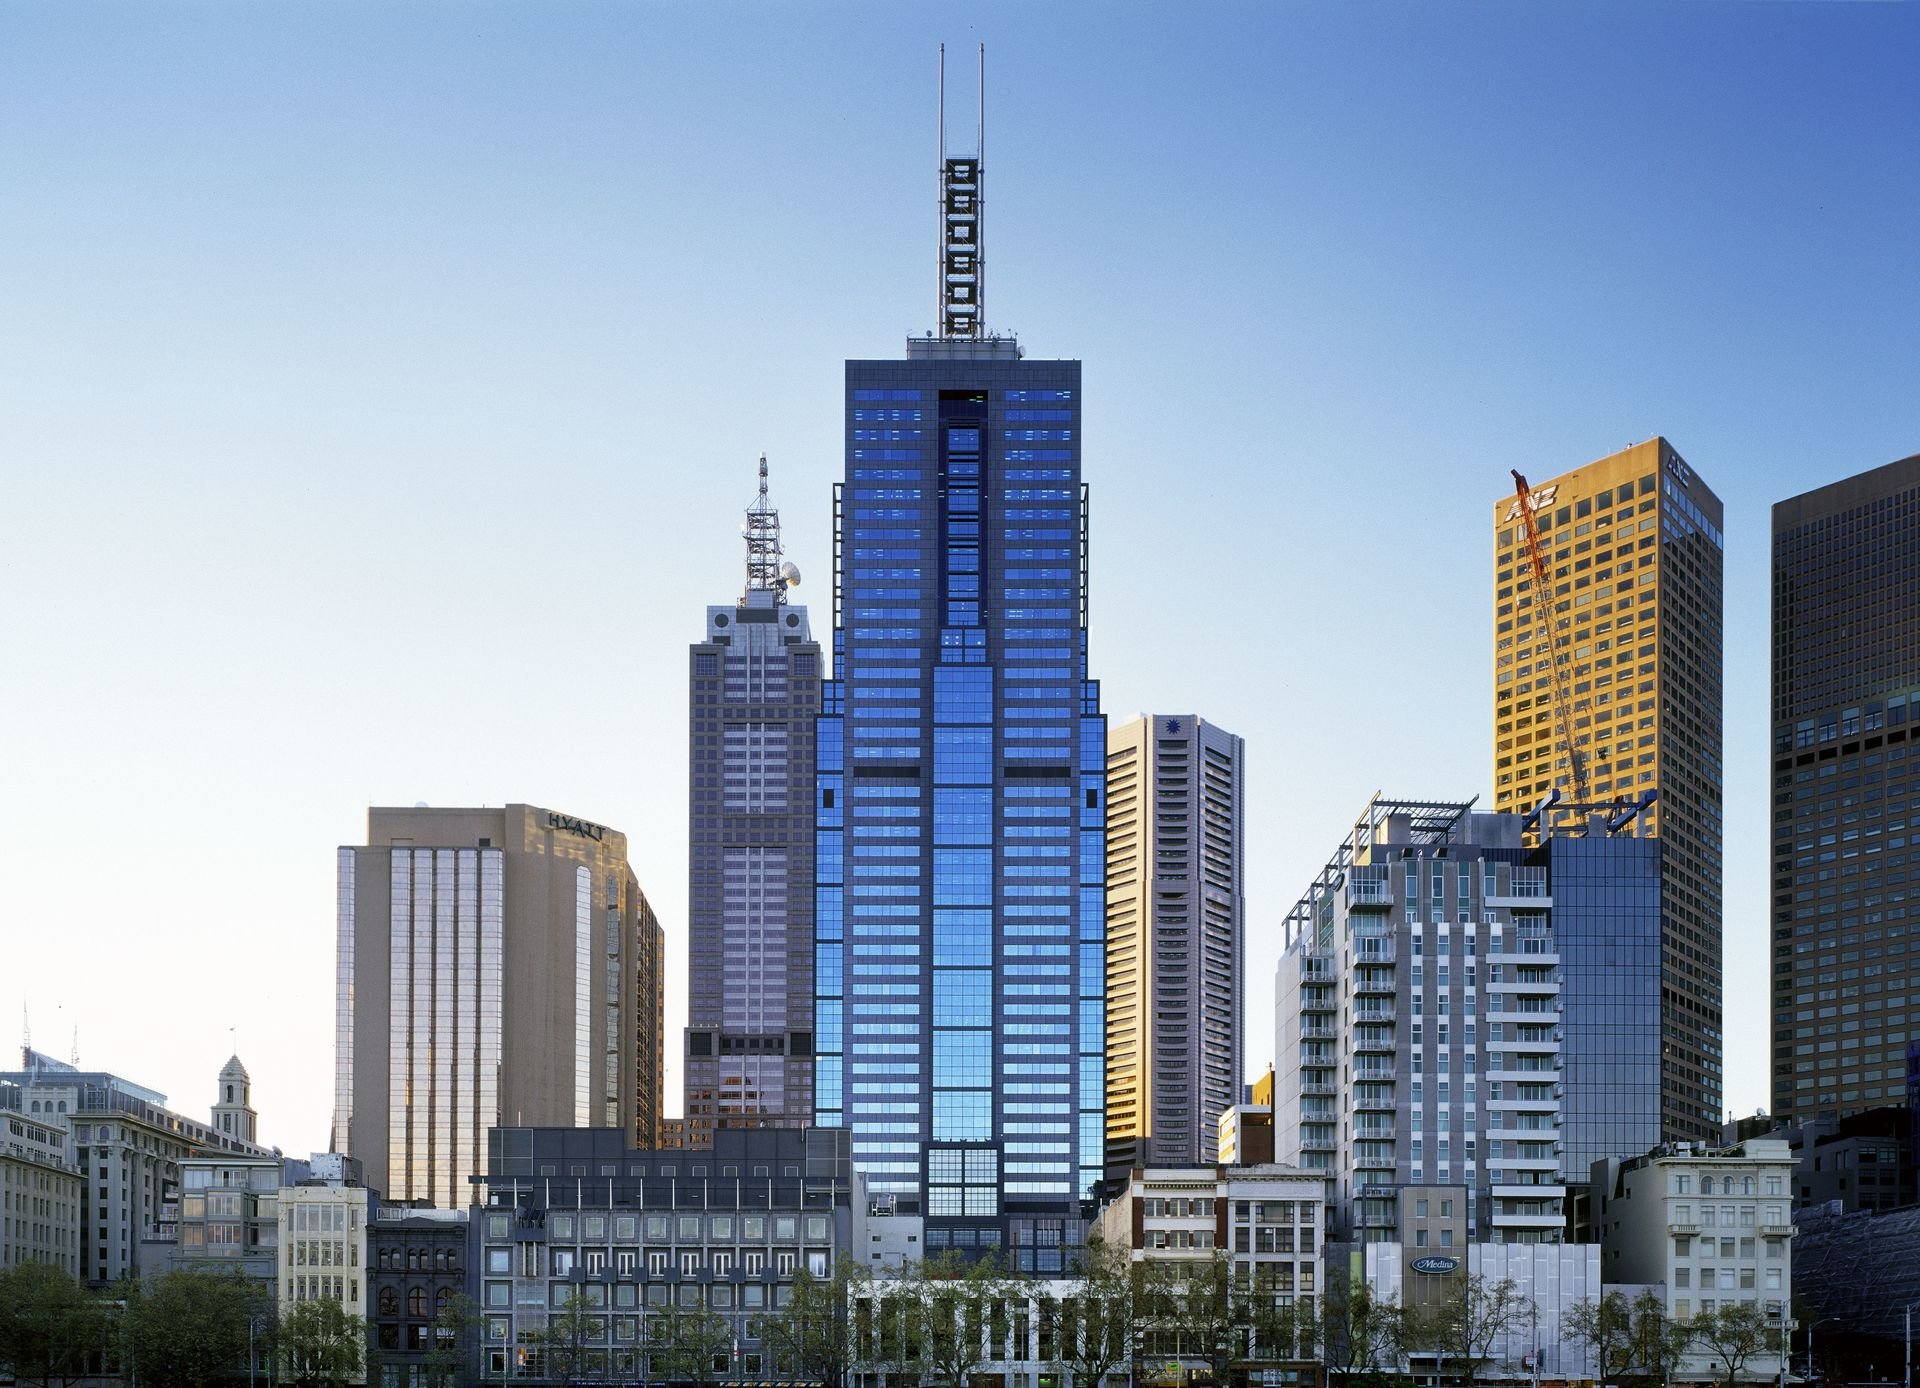 FINEART DESING OFFICE LOCATED IN MELBOURNE CITY OF THE HEART